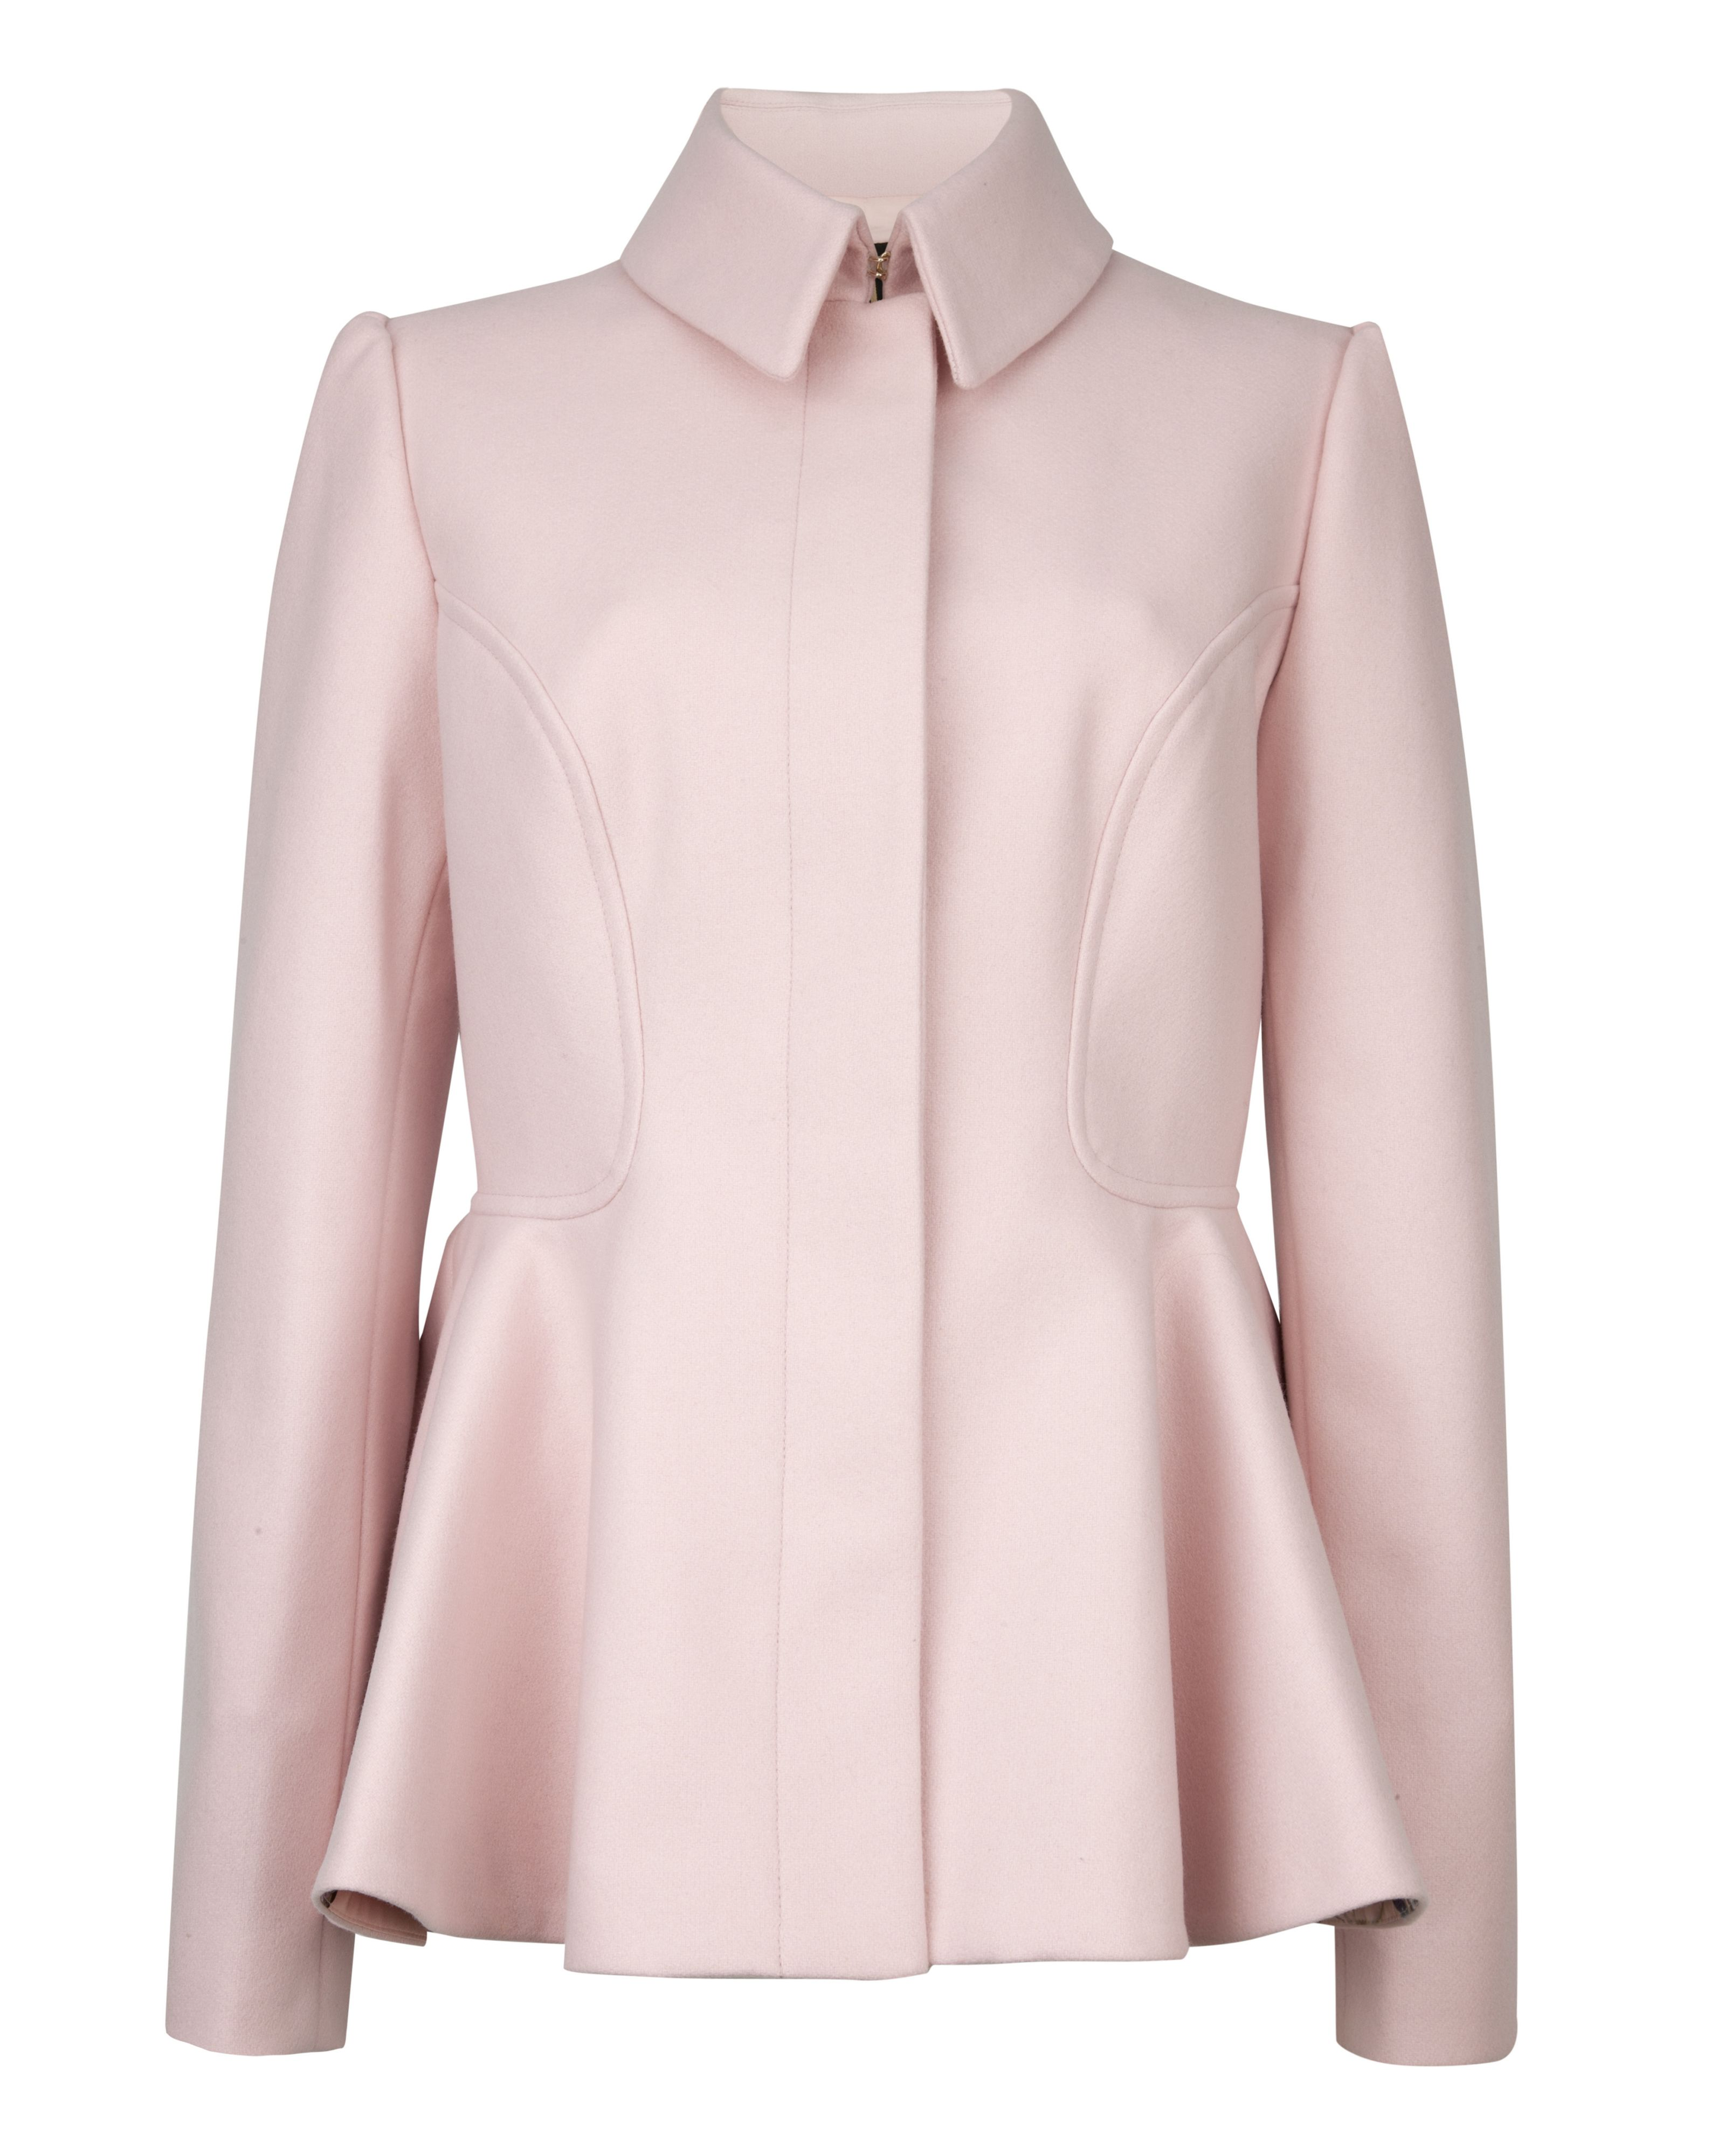 Sollel short peplum coat